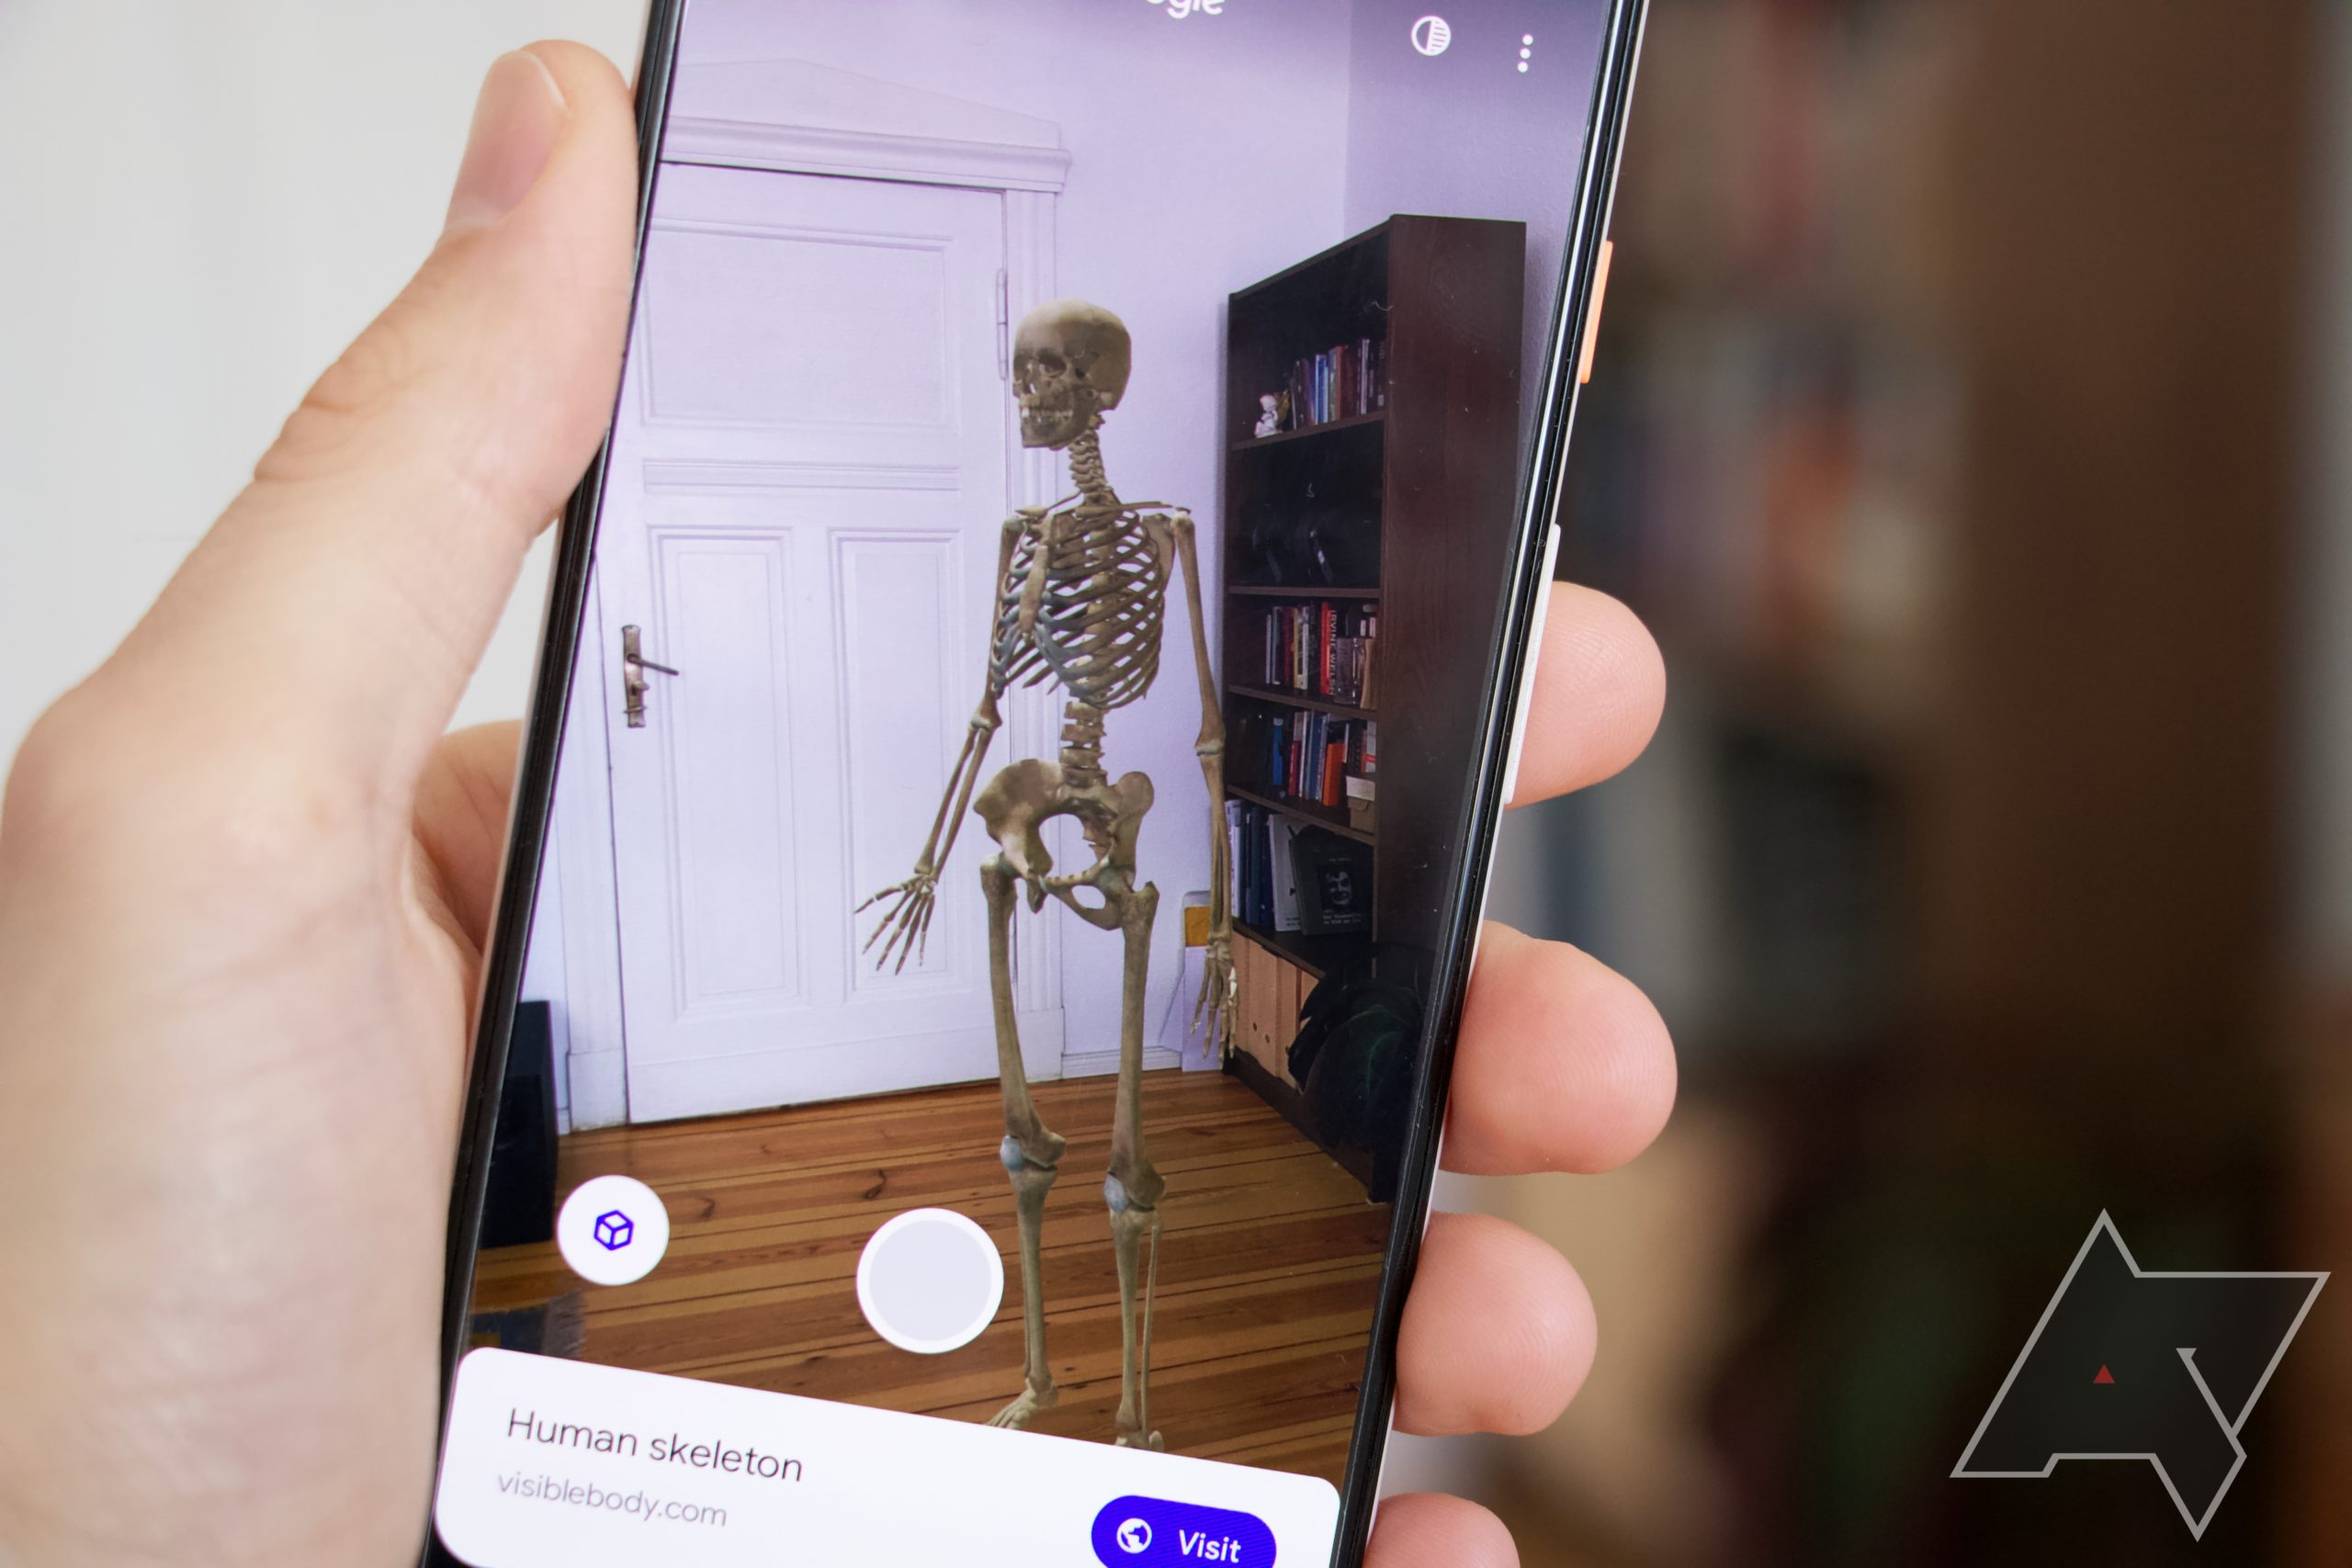 Bored with 3D animals? Google also has skeletons, cars, Santa, the Mars Rover, and other AR objects